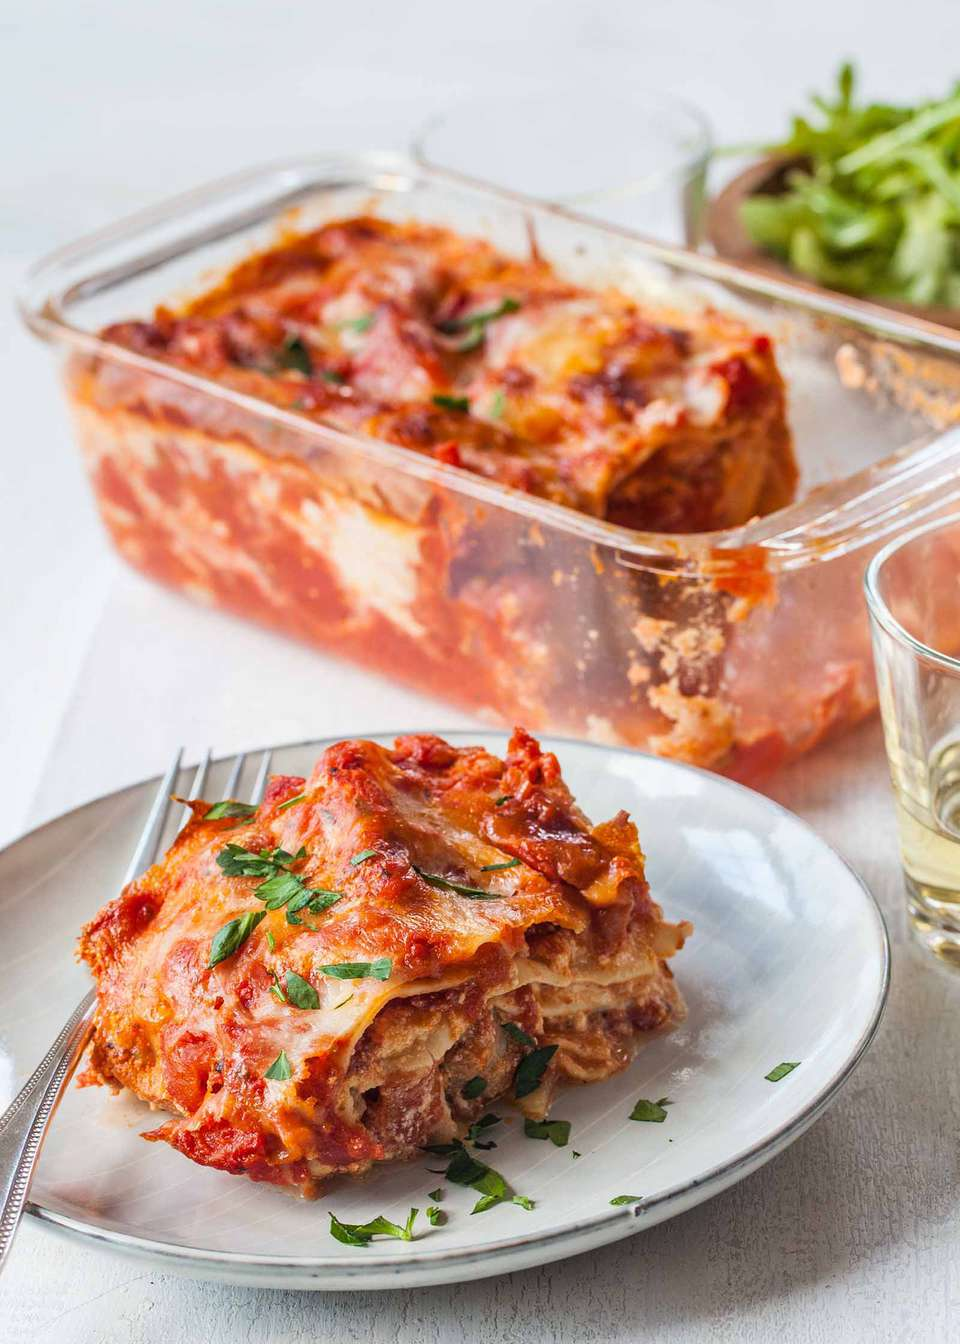 Vertical view of small batch of loaf pan lasagna with sausage on a plate garnished with chopped parsley and a fork on the left. Above the plate is the loaf pan with some of the lasagna missing. A partial view of a bowl of lettuce and a tumbler of white wine is visible.